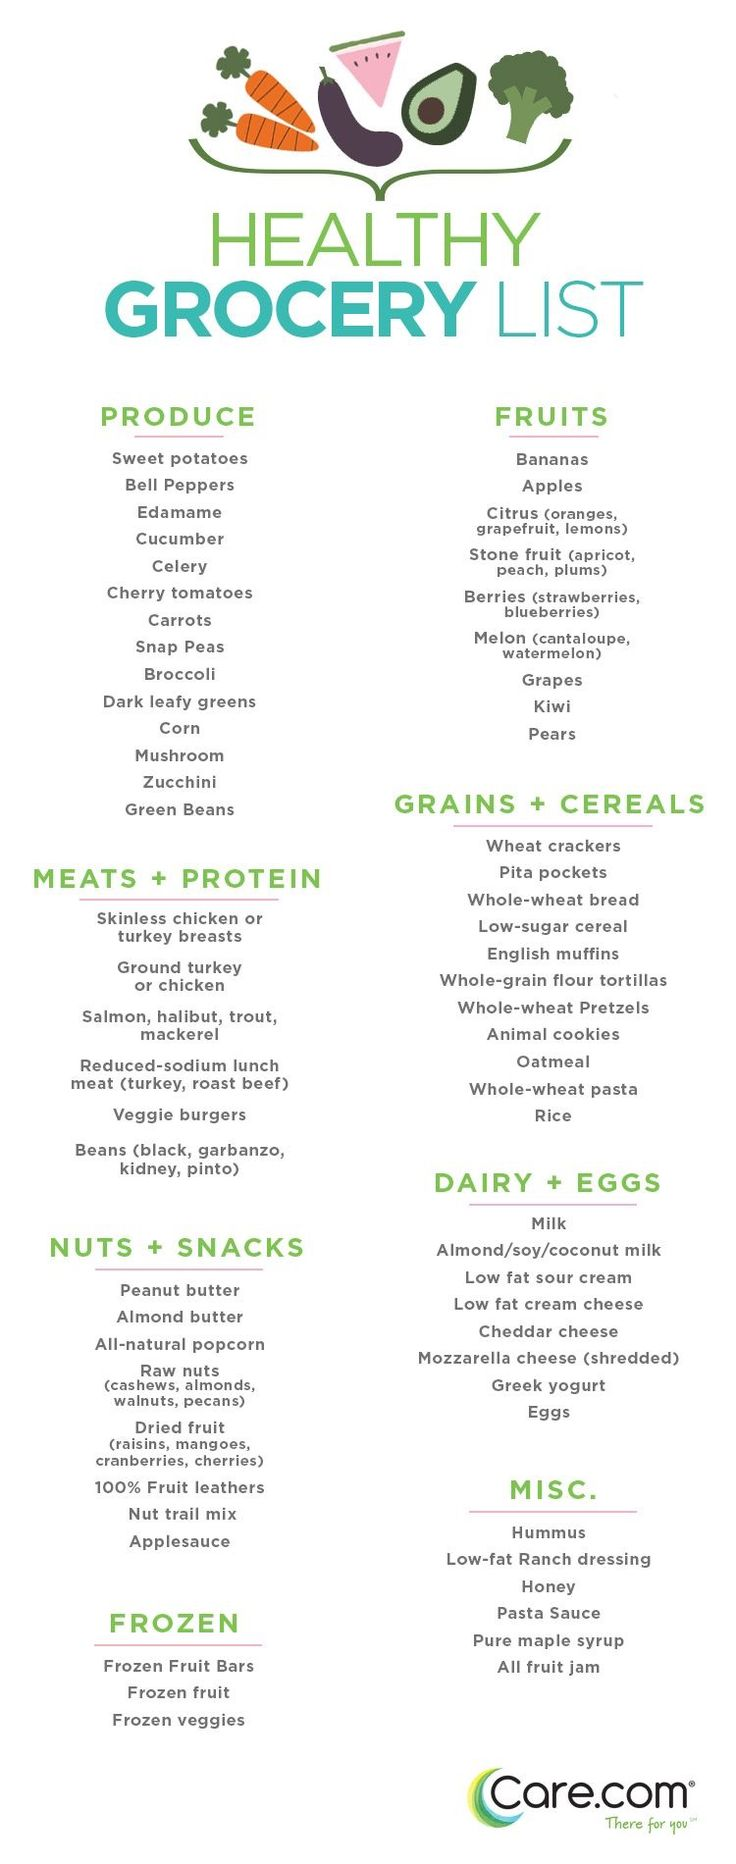 Healthy food shopping list http://www.skinnymefat.com